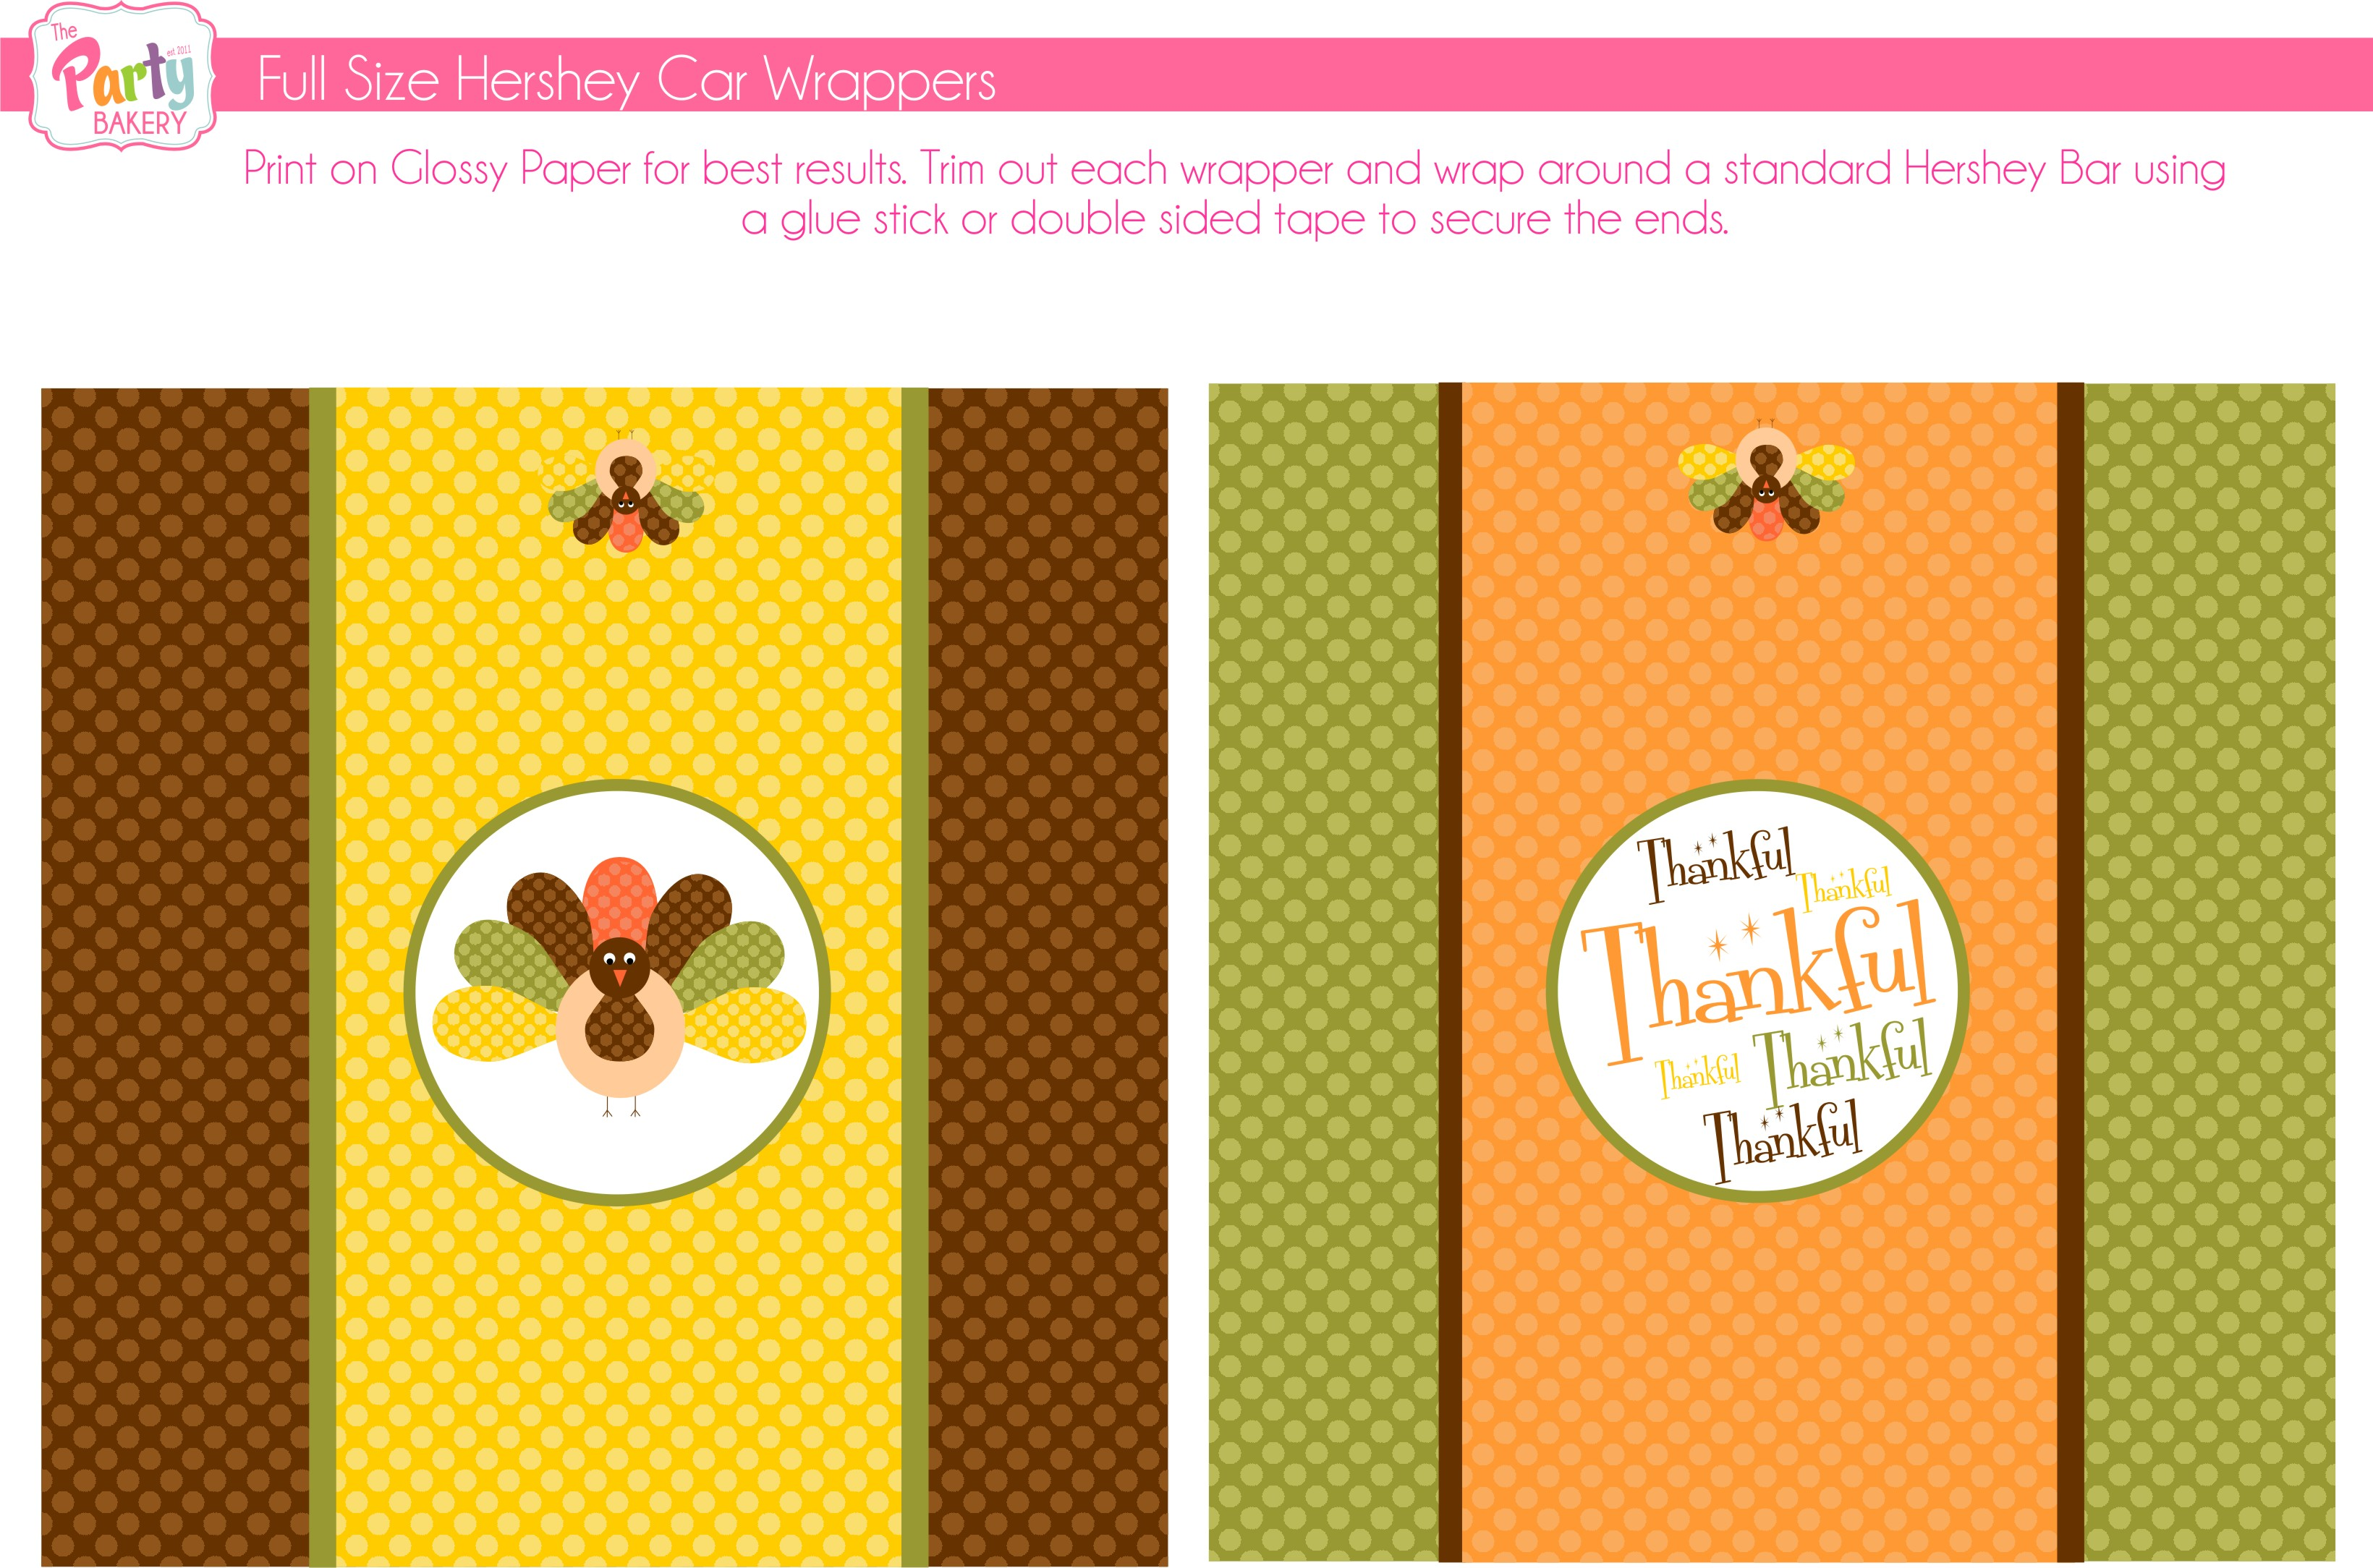 free thanksgiving printables from the party bakery catch my party